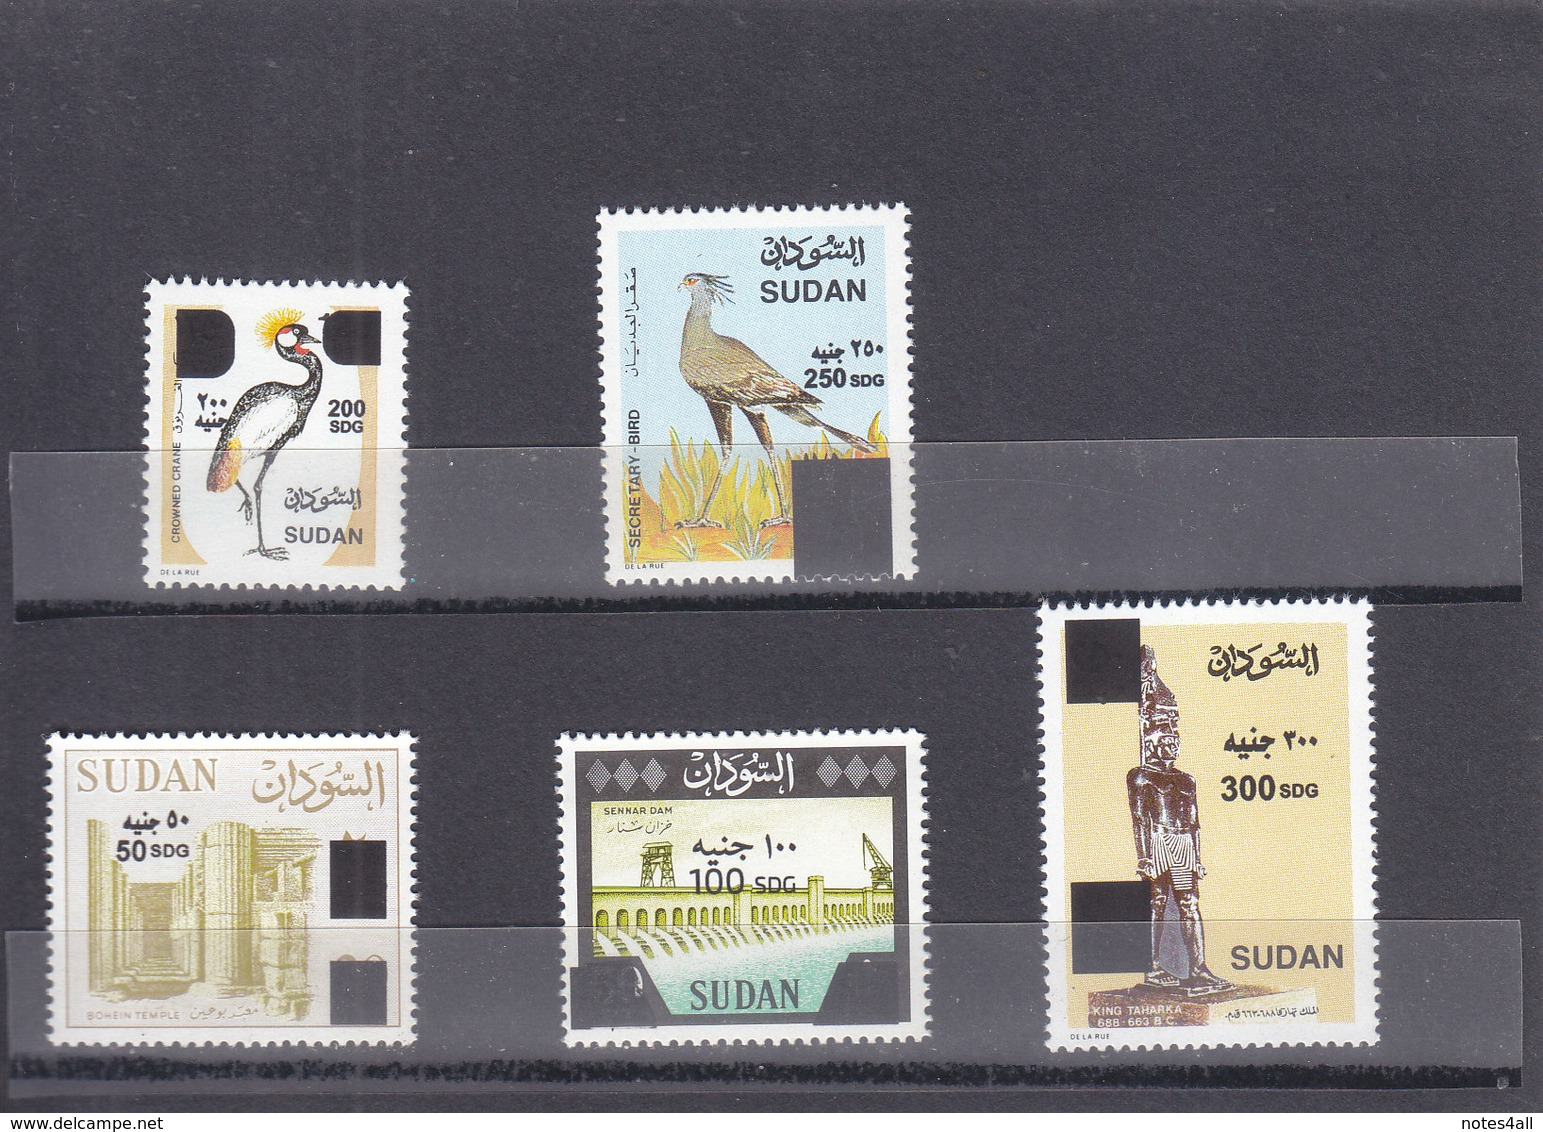 Stamps SUDAN 2019 DEFINITIVE ORDINARY 8th SERIES SURCHARGED HIGH VALUES SET MNH - Sudan (1954-...)